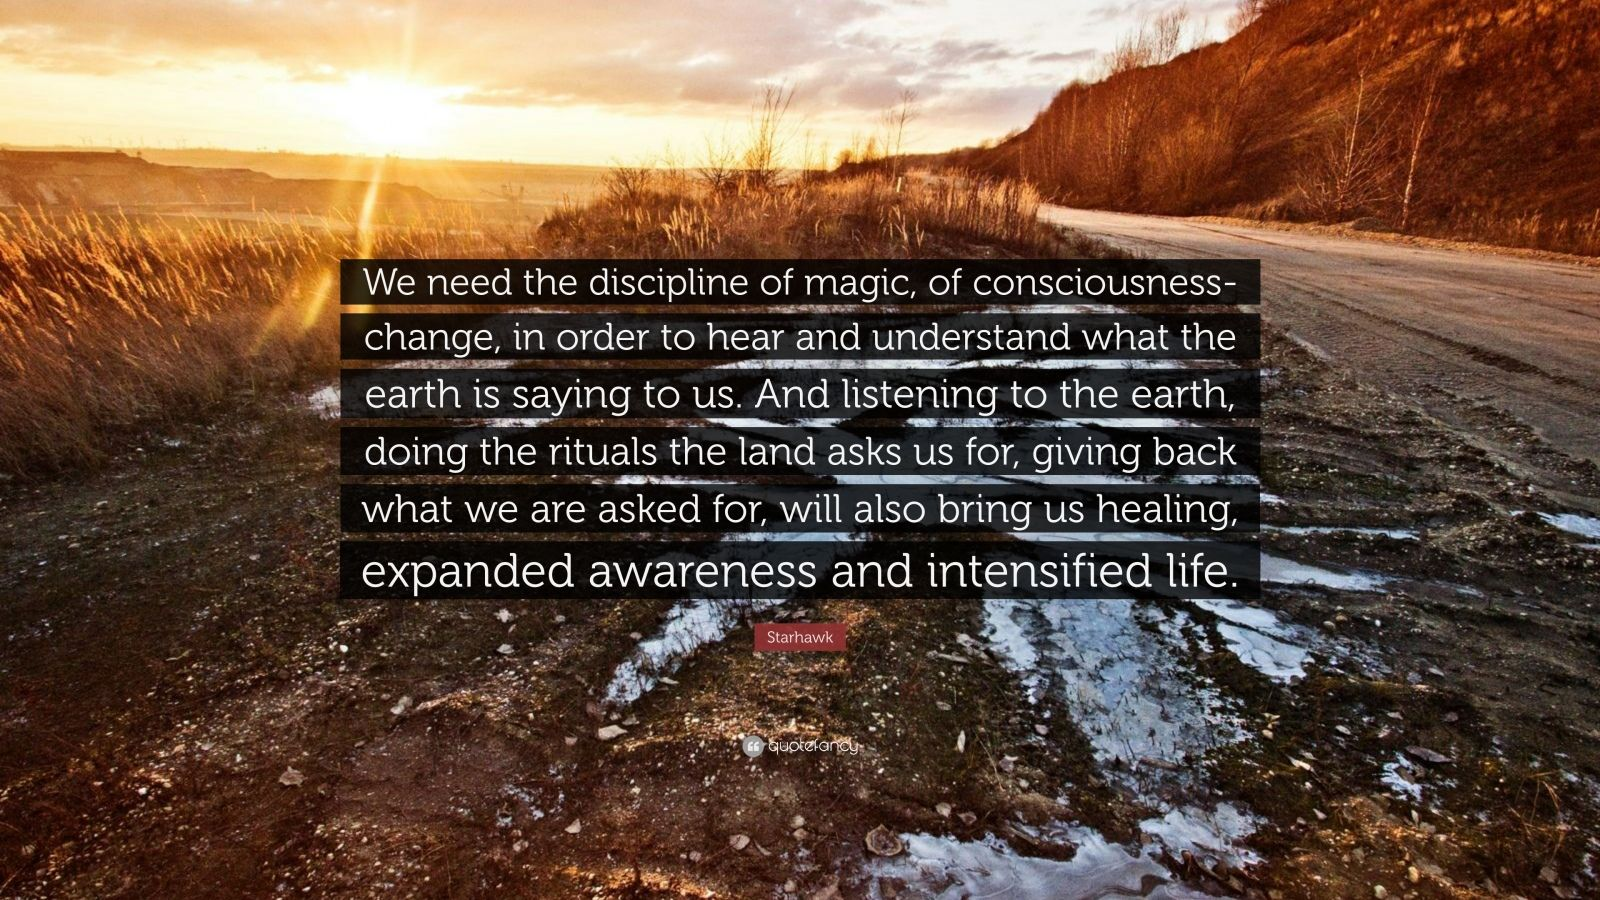 "Starhawk Quote: ""We need the discipline of magic, of consciousness-change, in order to hear and understand what the earth is saying to us. And listening to the earth, doing the rituals the land asks us for, giving back what we are asked for, will also bring us healing, expanded awareness and intensified life."""